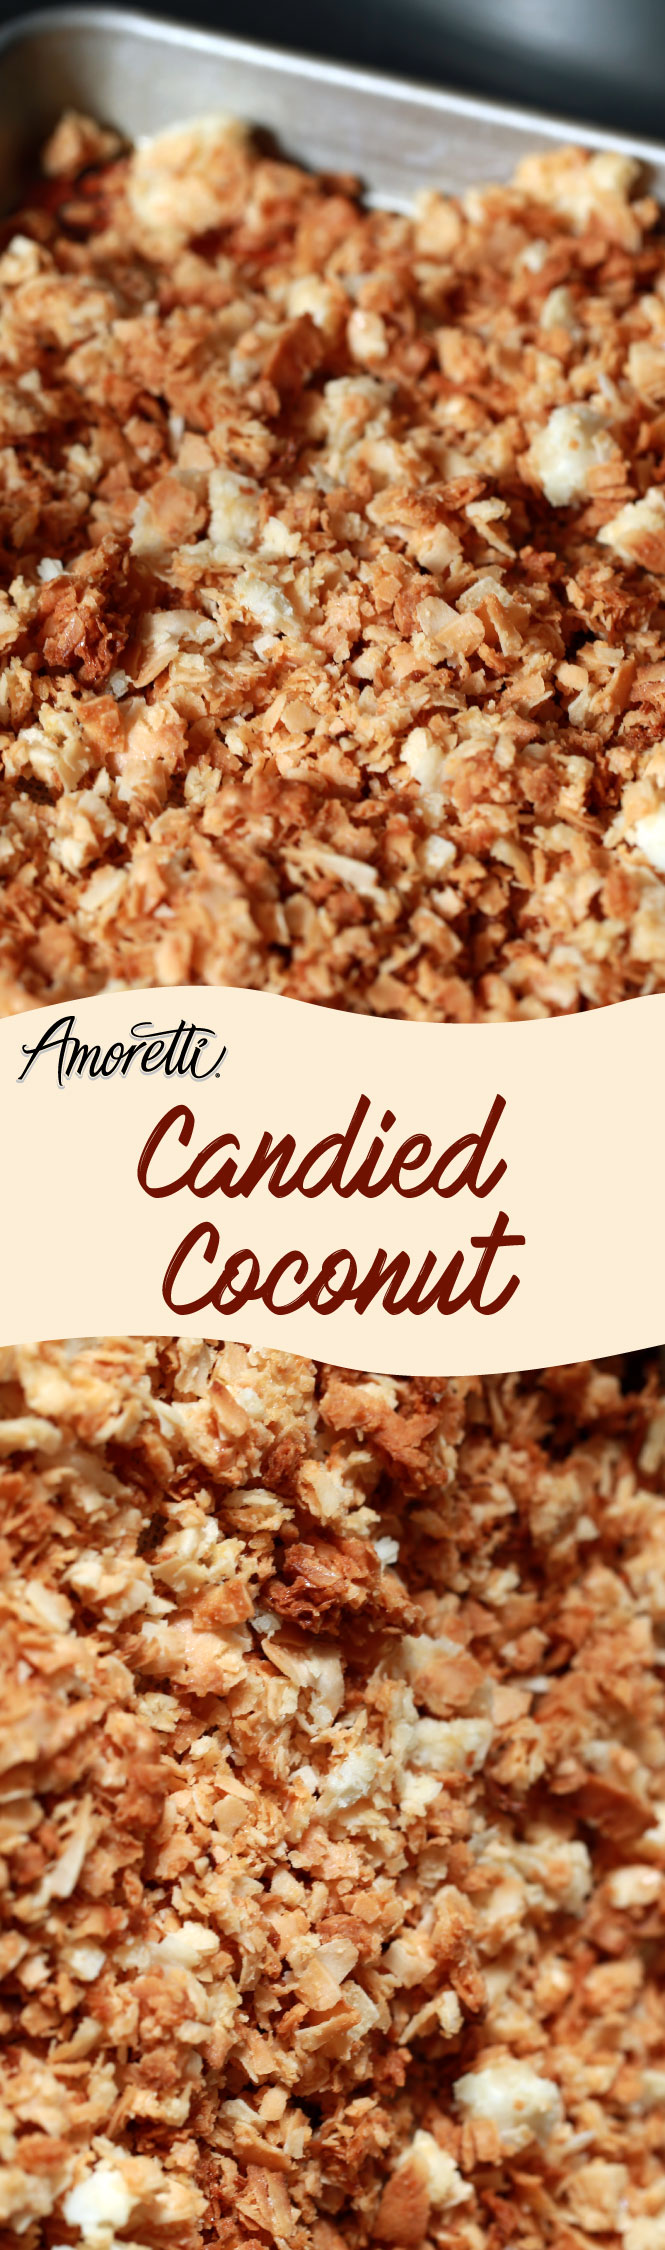 Candied Coconut for topping ice cream, granola, and much more!